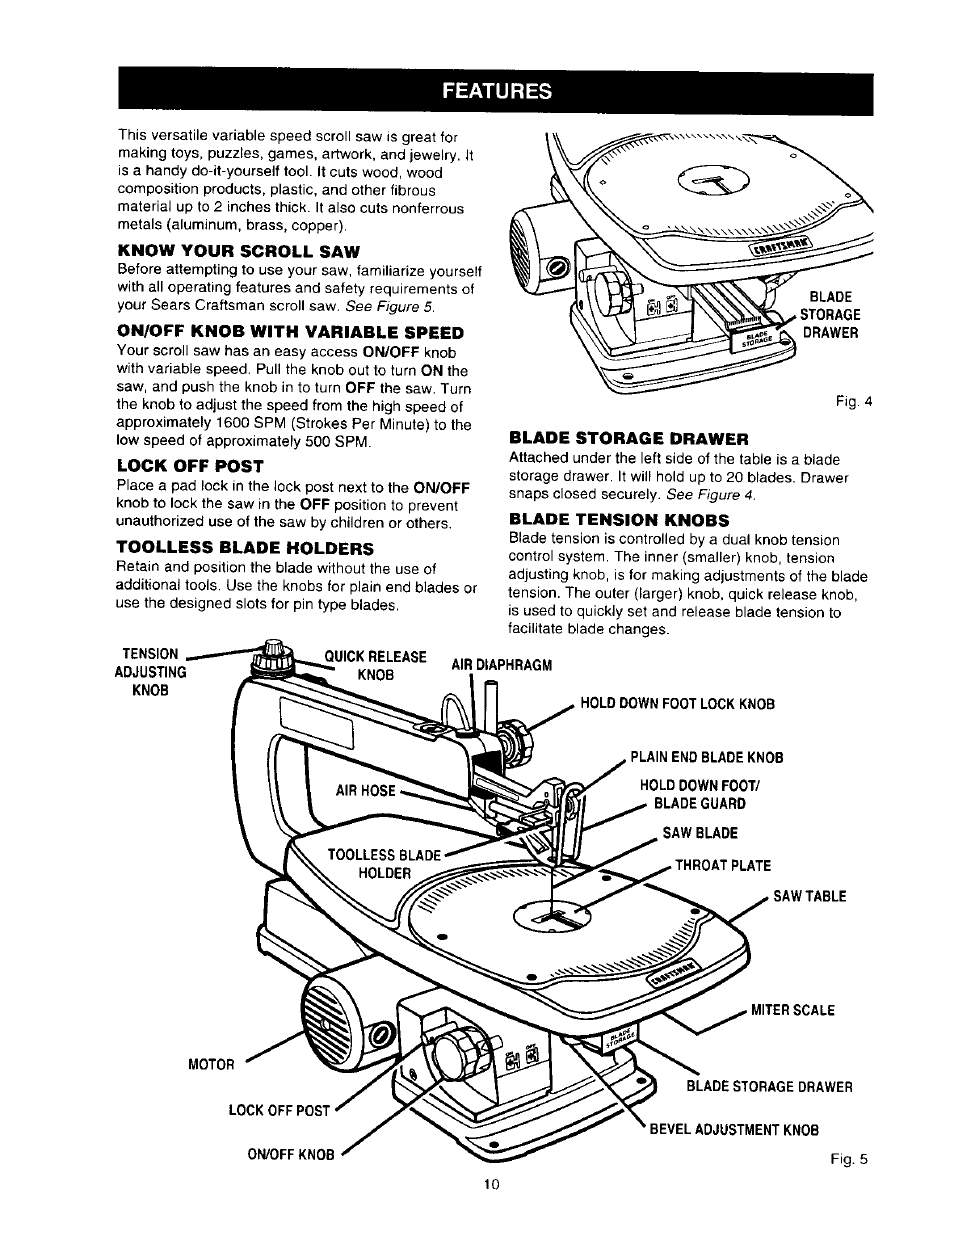 Know your scroll saw, On/off knob with variable speed